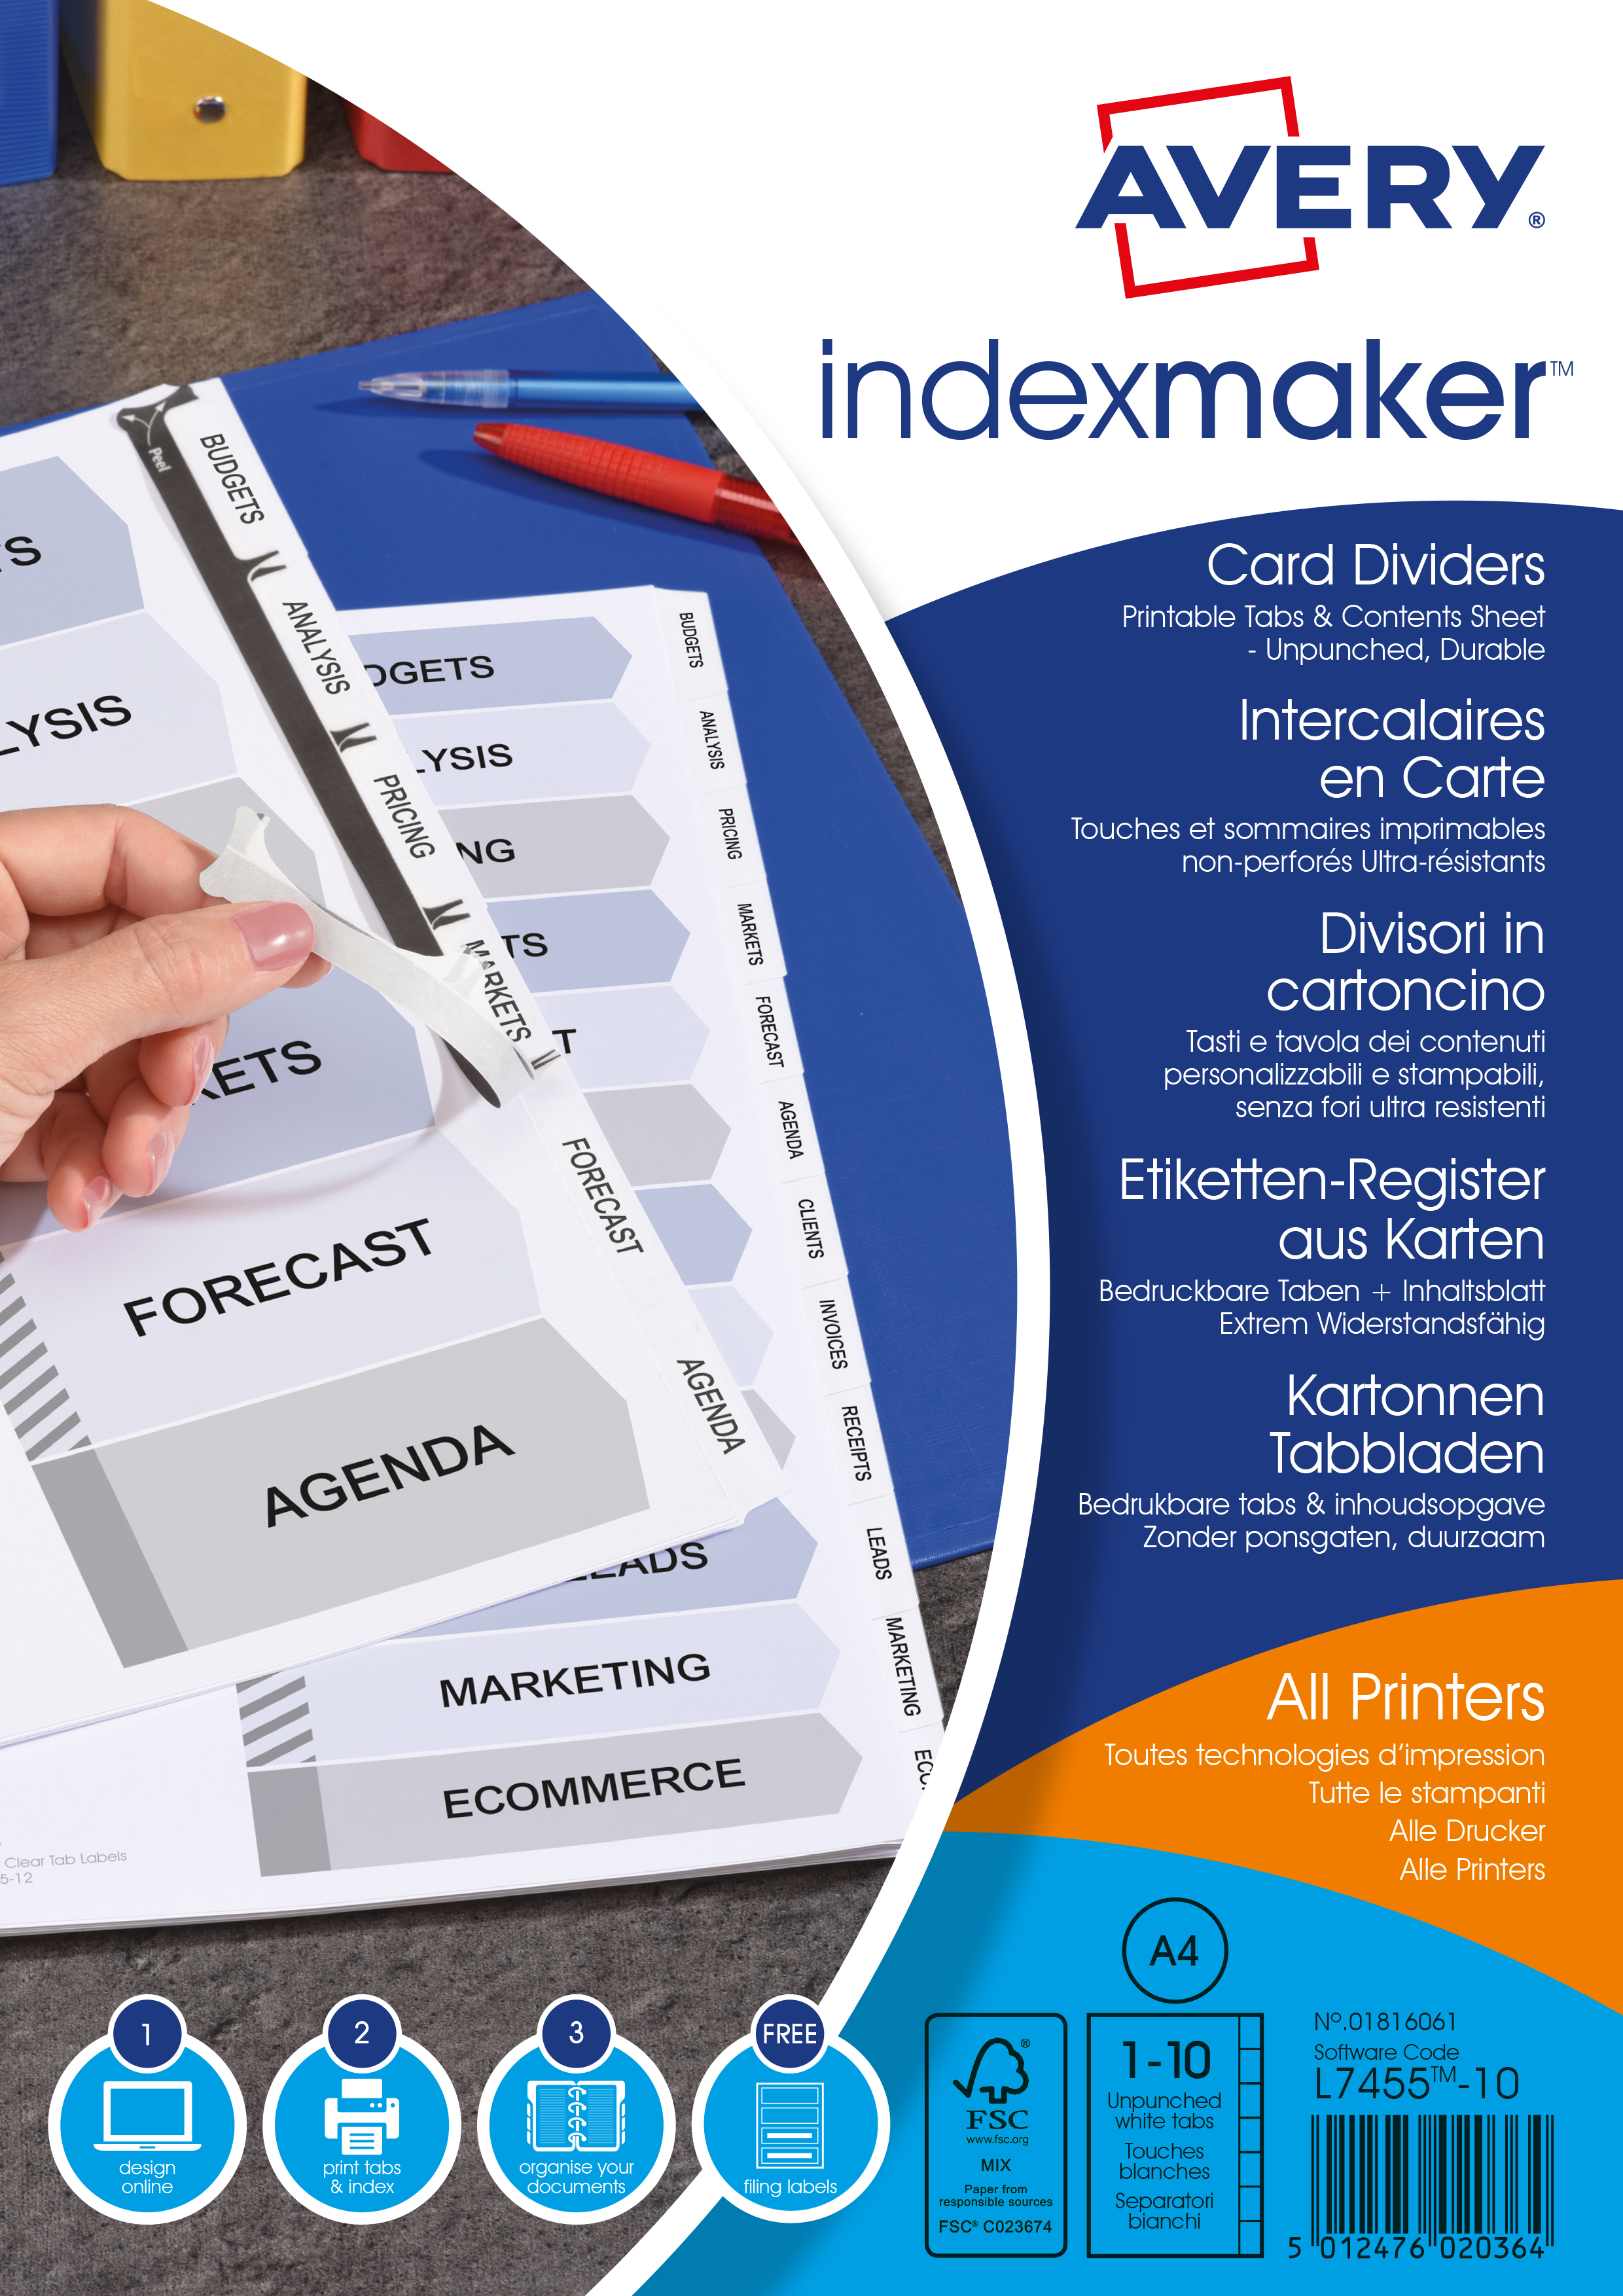 Dividers Avery Indexmaker Divider 10 Part A4 Unpunched 190gsm Card White with White Mylar Tabs 01816061